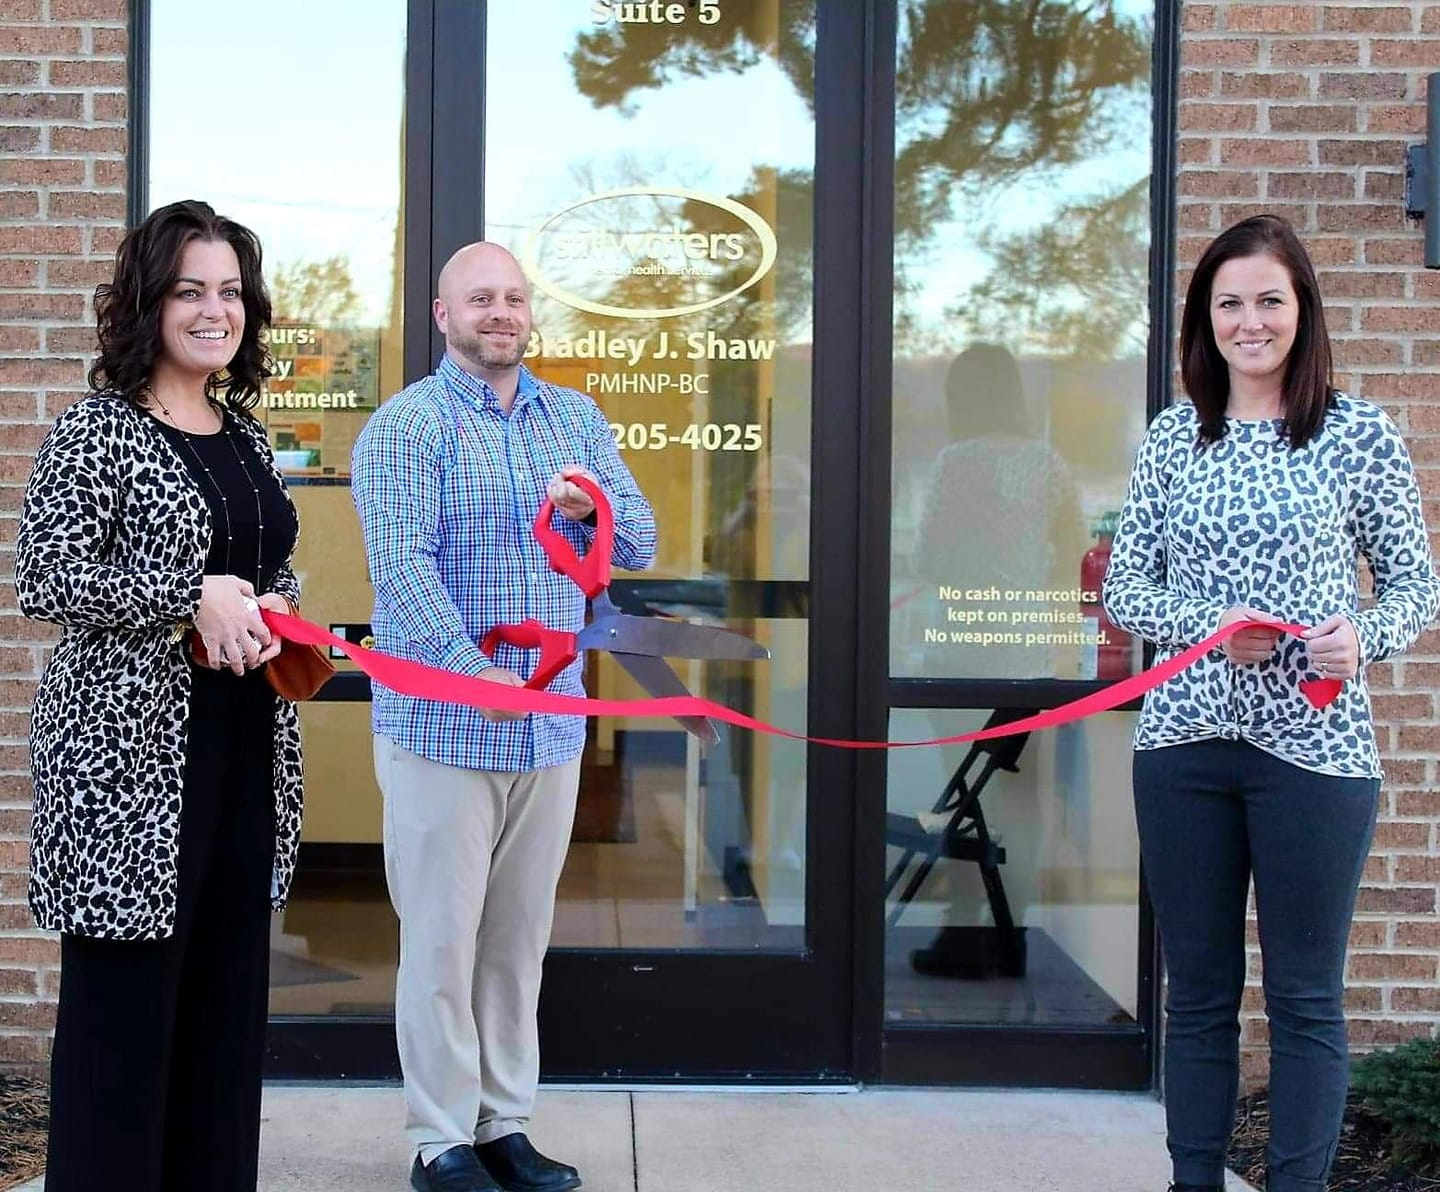 Bradley Shaw ribbon cutting